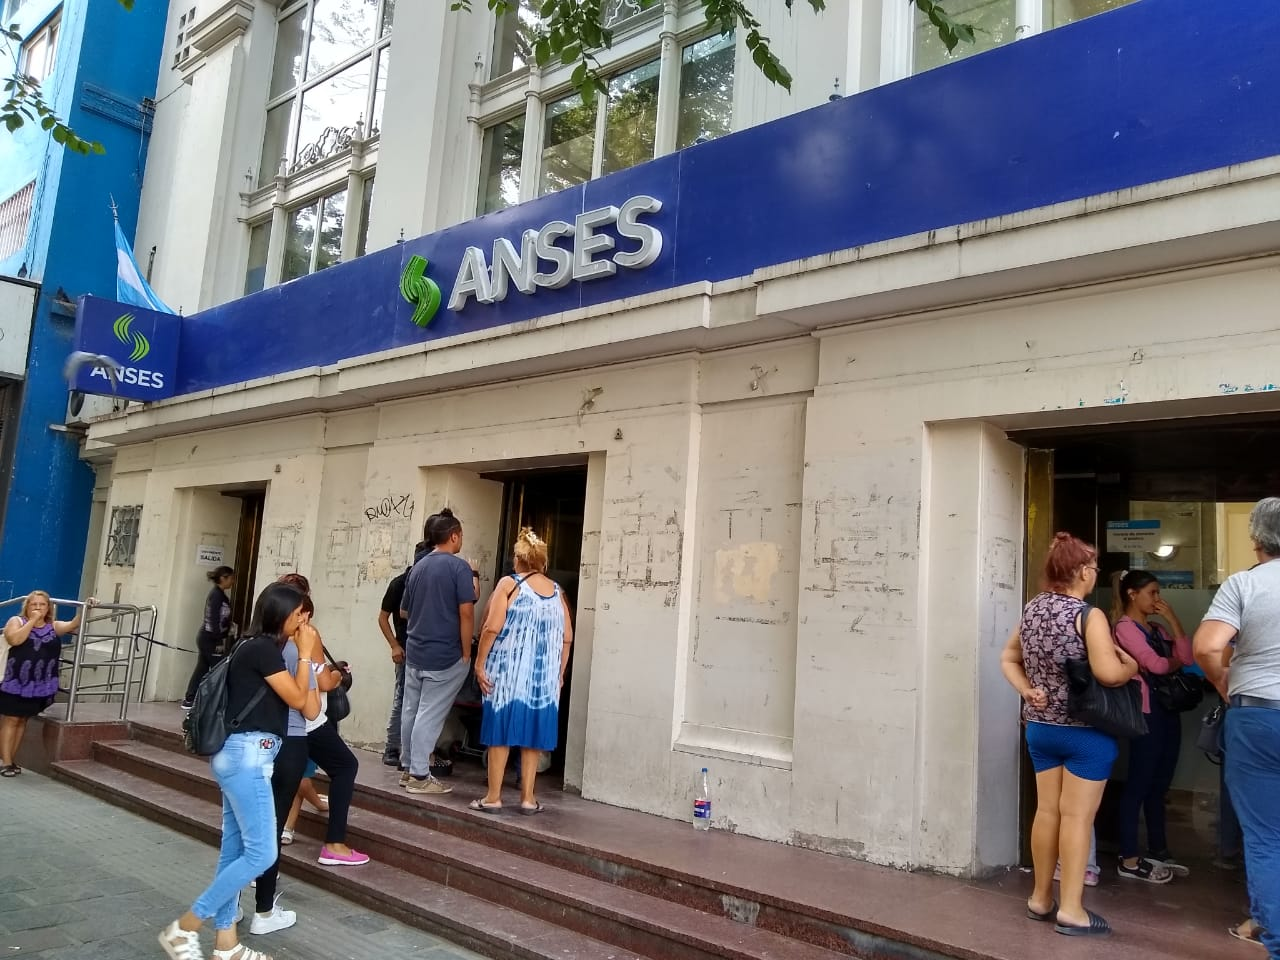 Anses by LNM